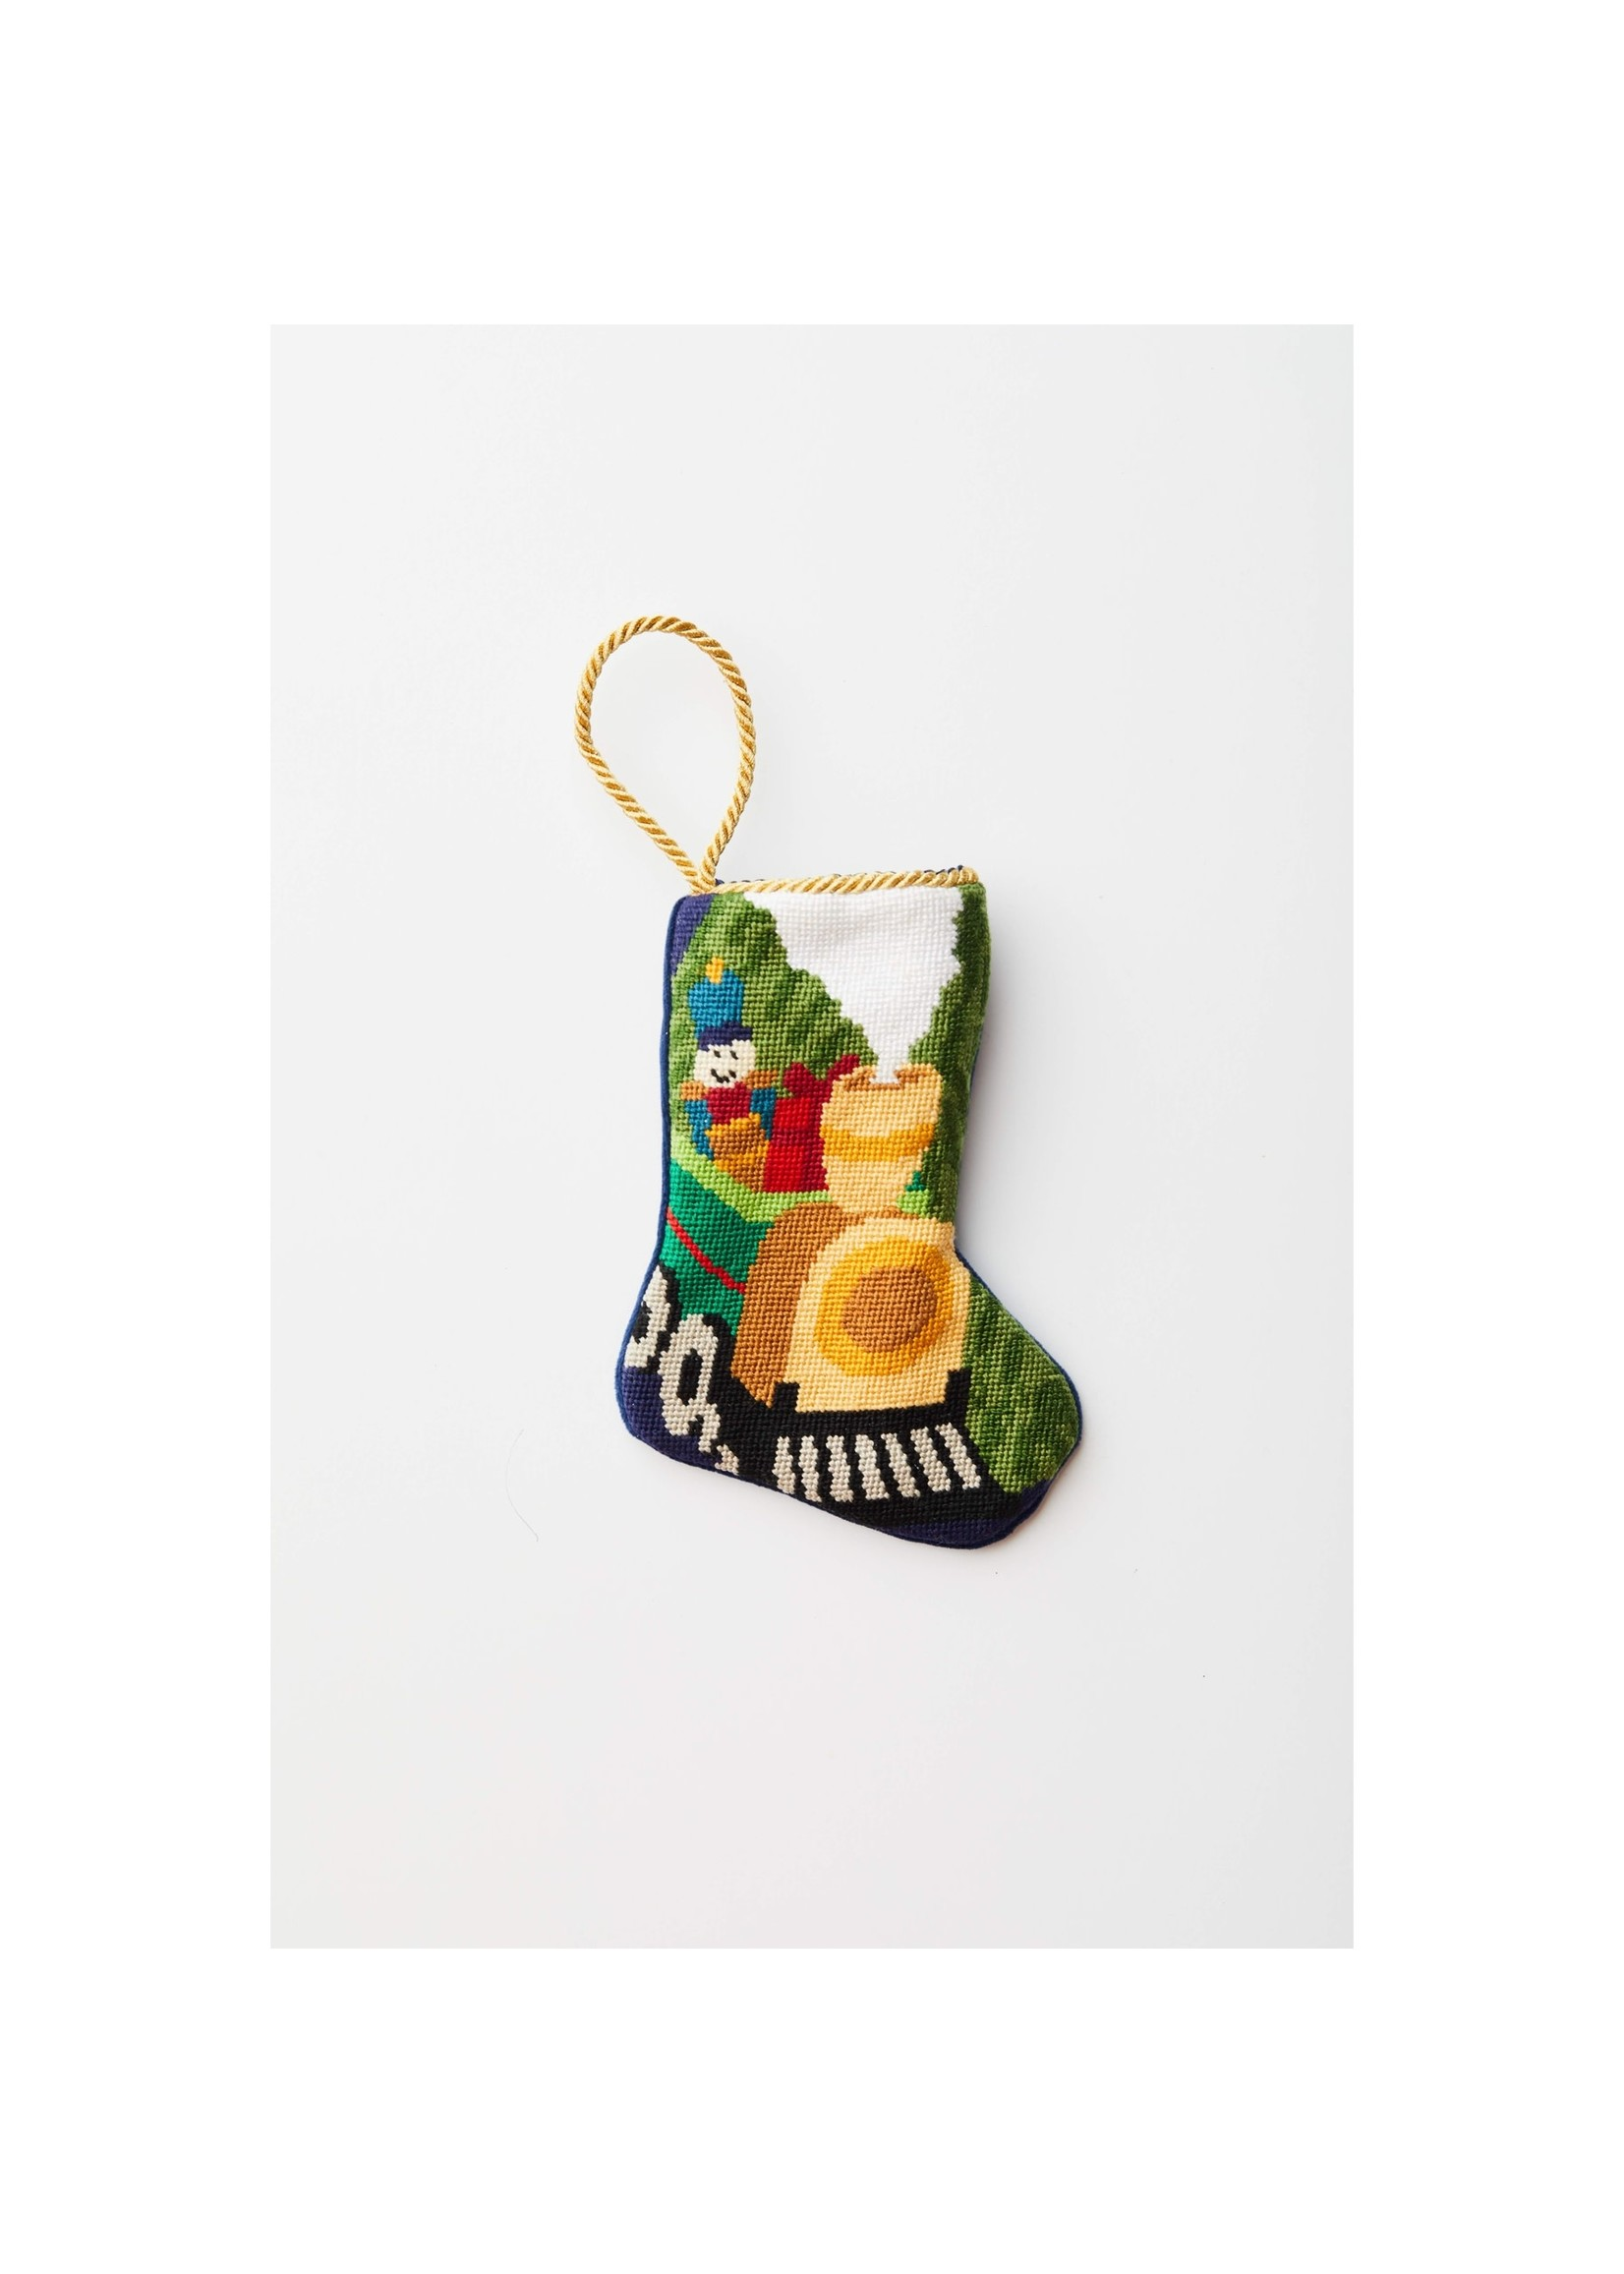 Bauble Stockings Bauble Stocking - All Aboard